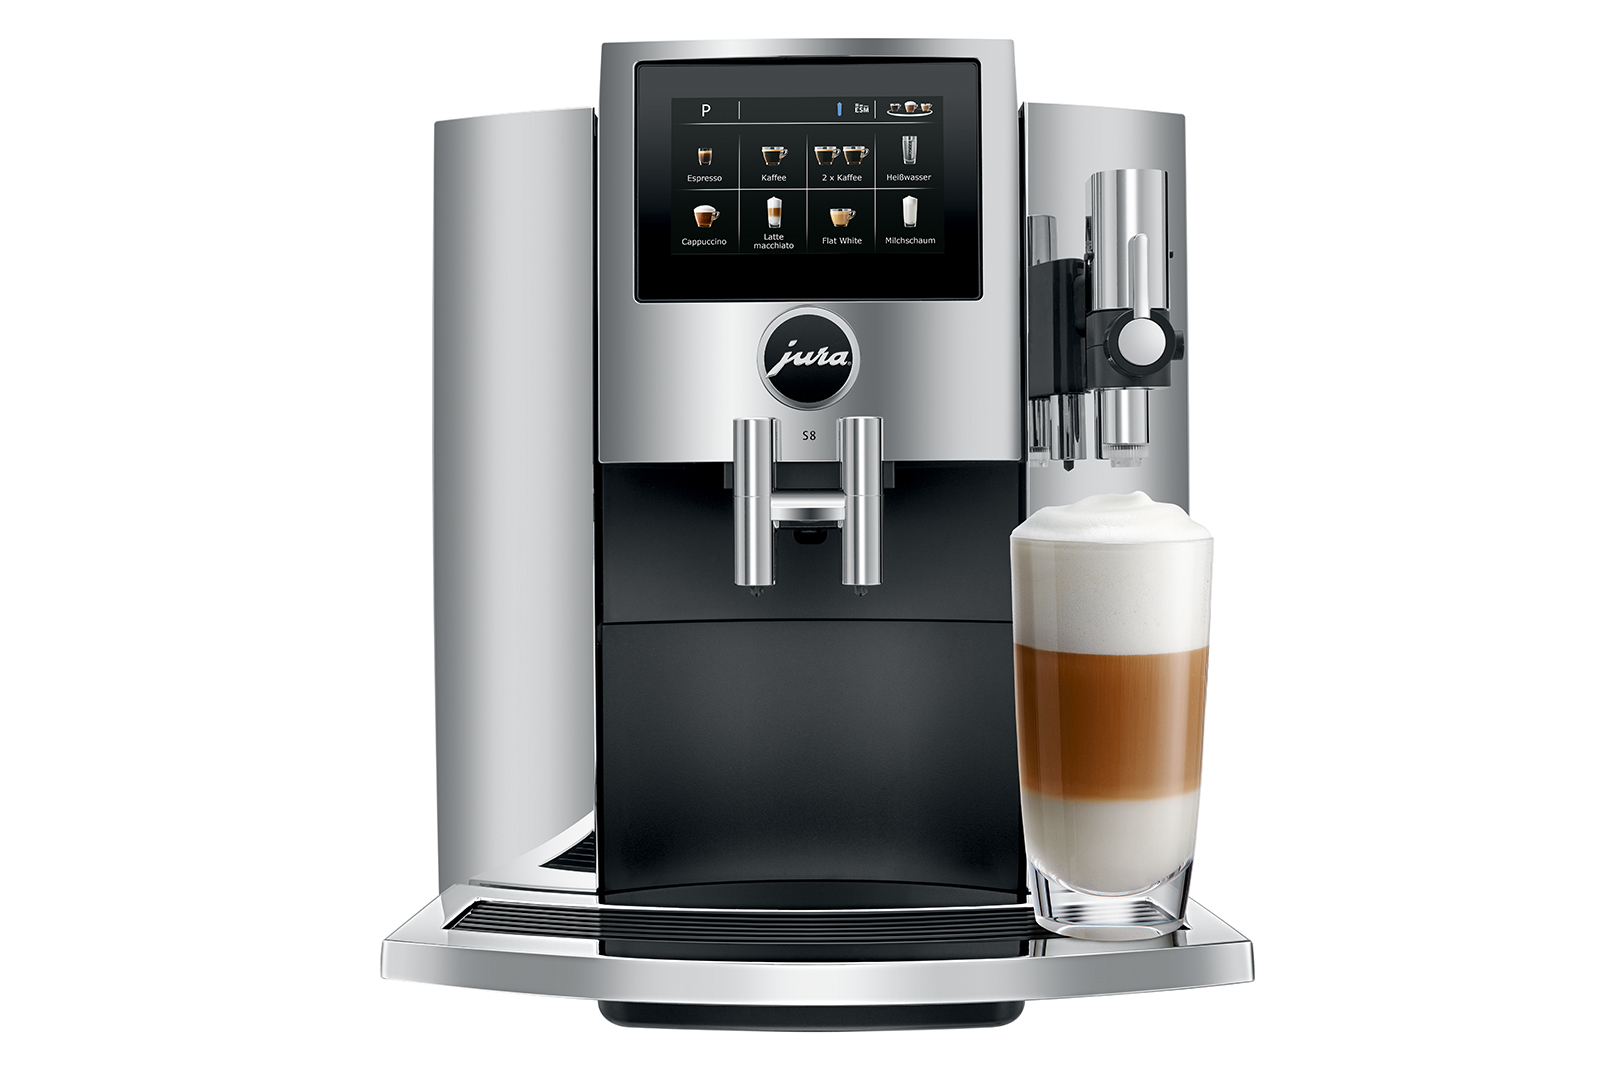 Carolina Coffee Jura S8 Chrome